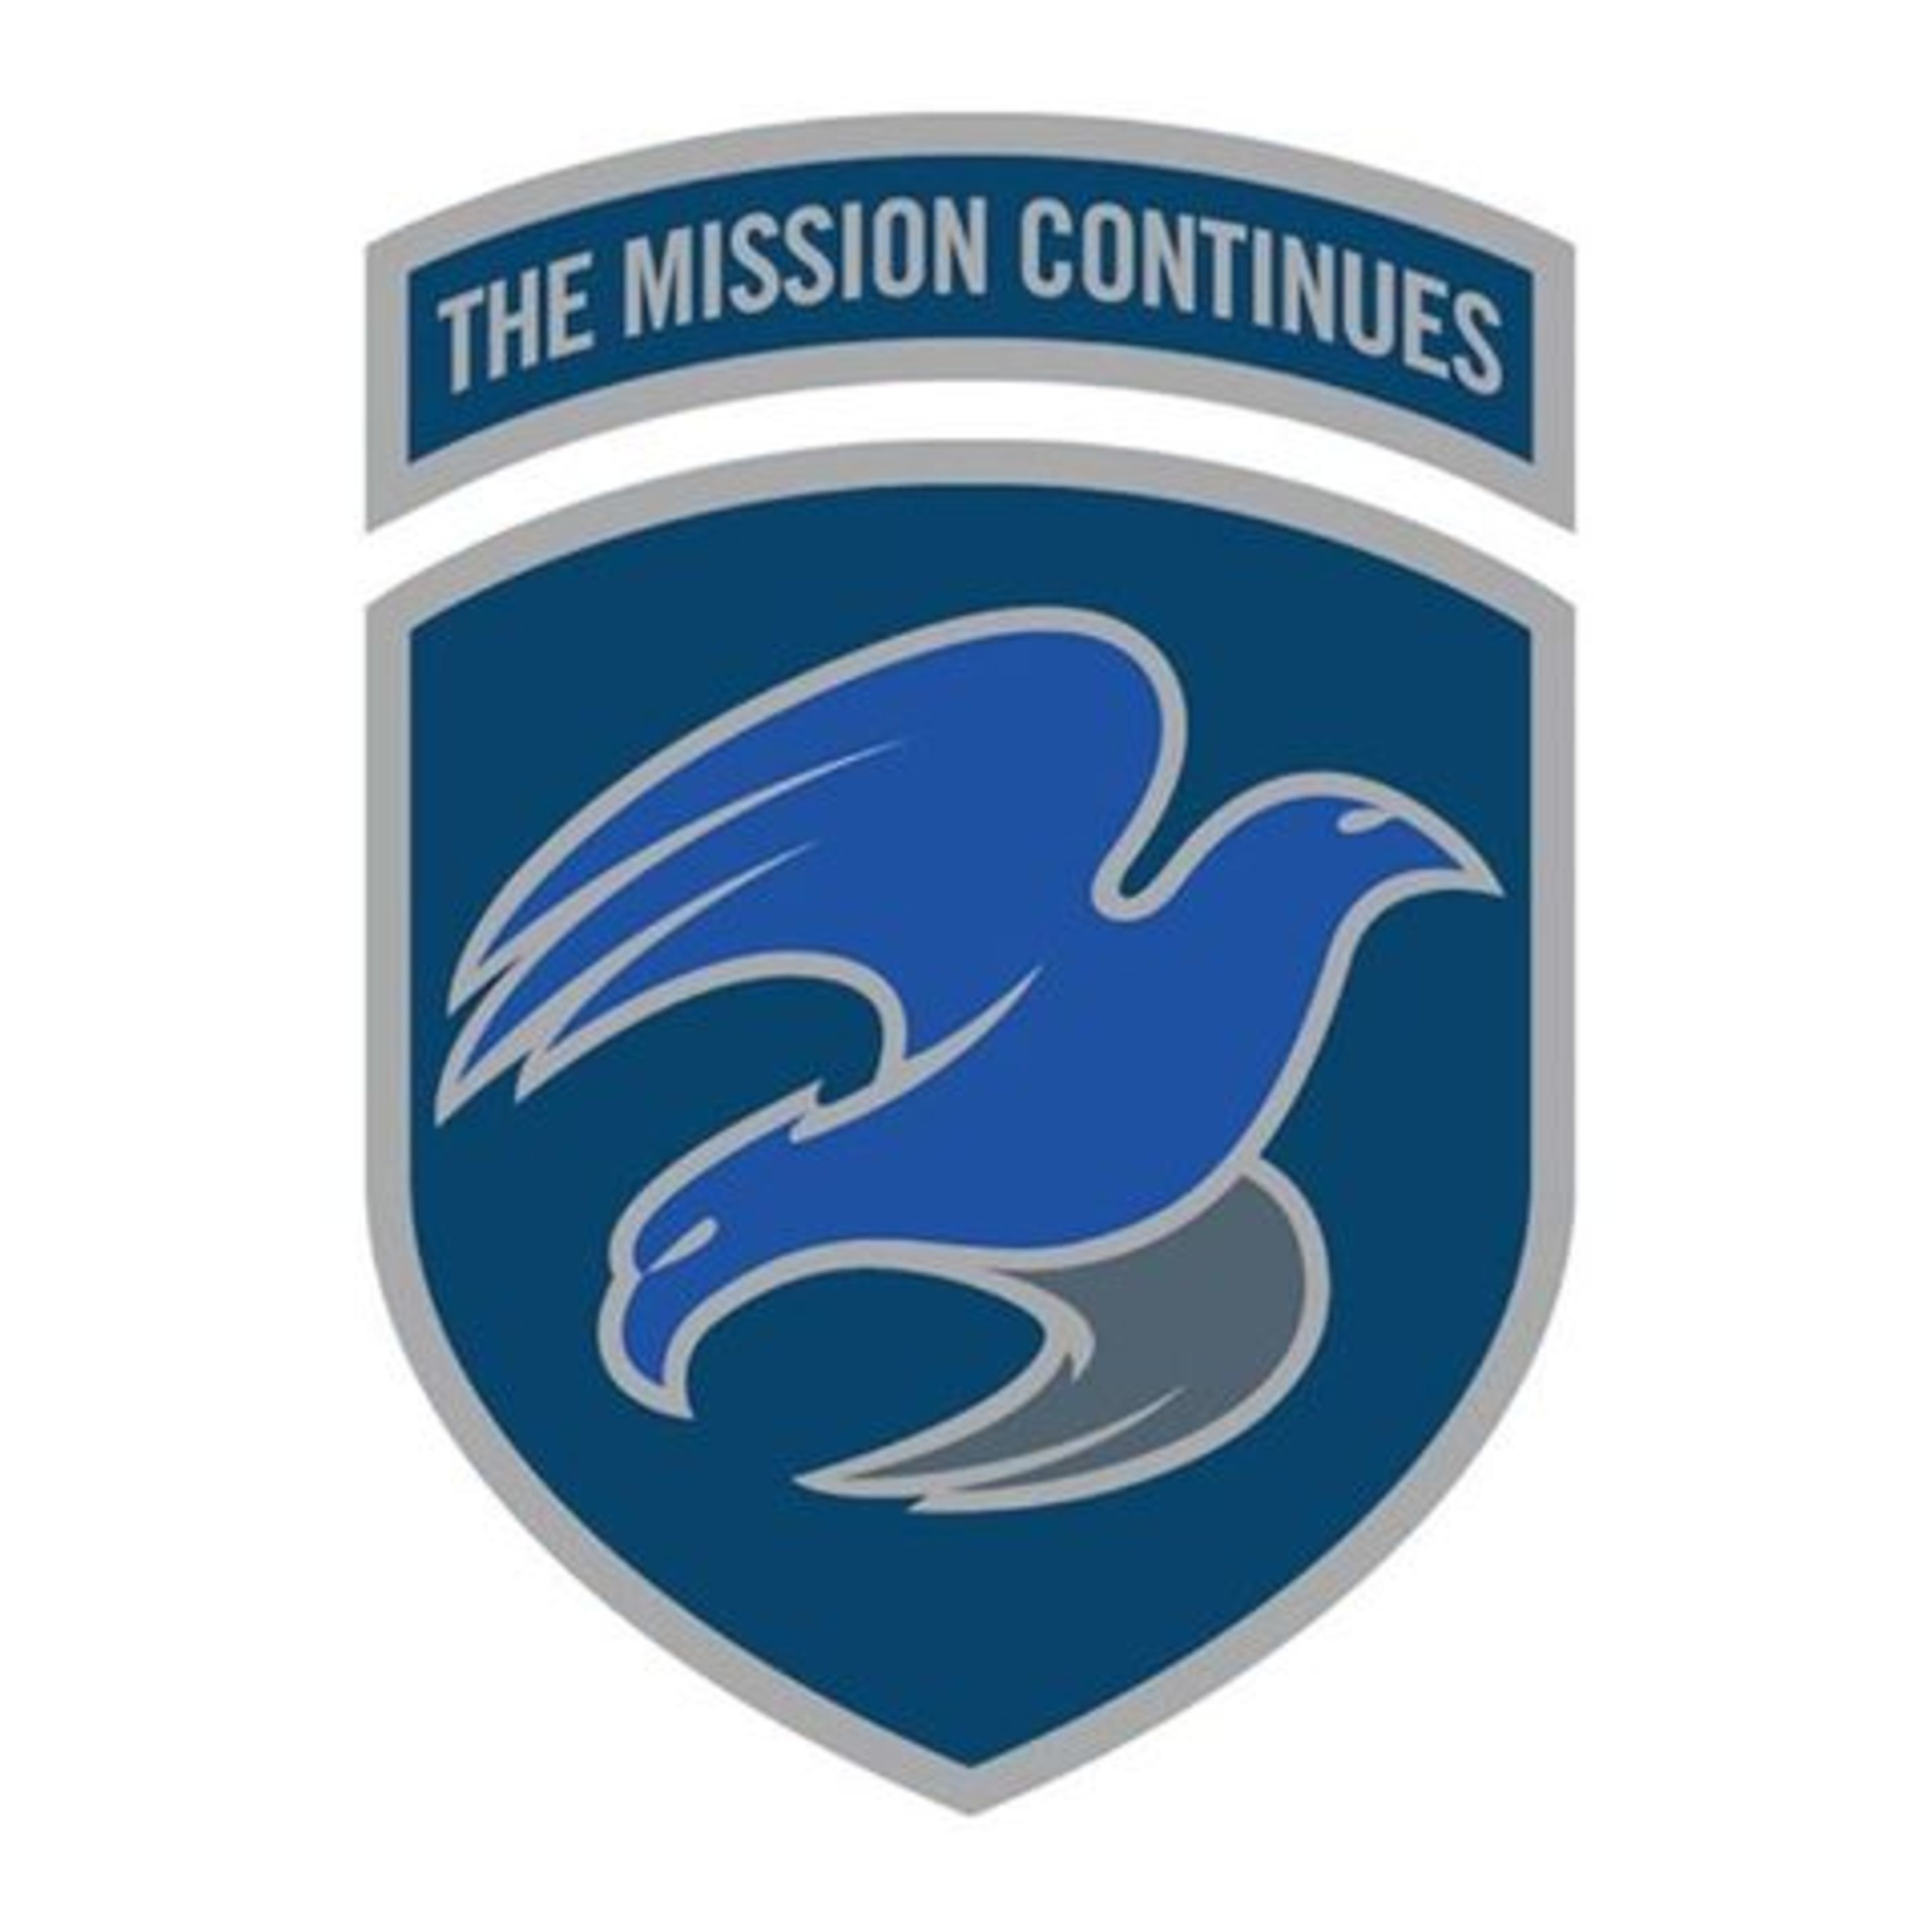 Episode 12: The Mission Continues: Empowering Veterans To Keep Serving and Succeeding